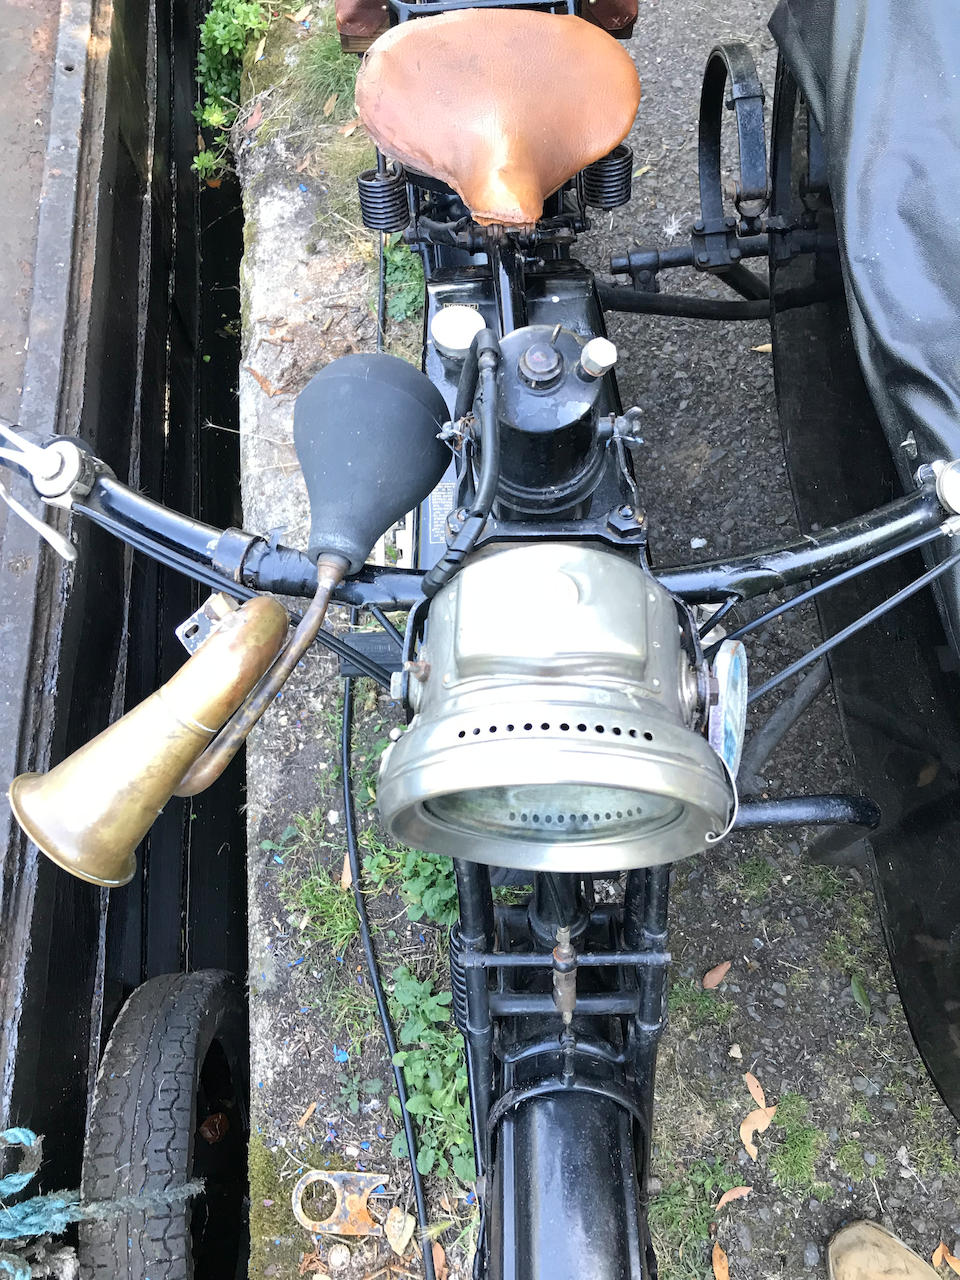 1918 Sunbeam 4hp French Military Motorcycle Combination Frame no. 7863 Engine no. 134/7963